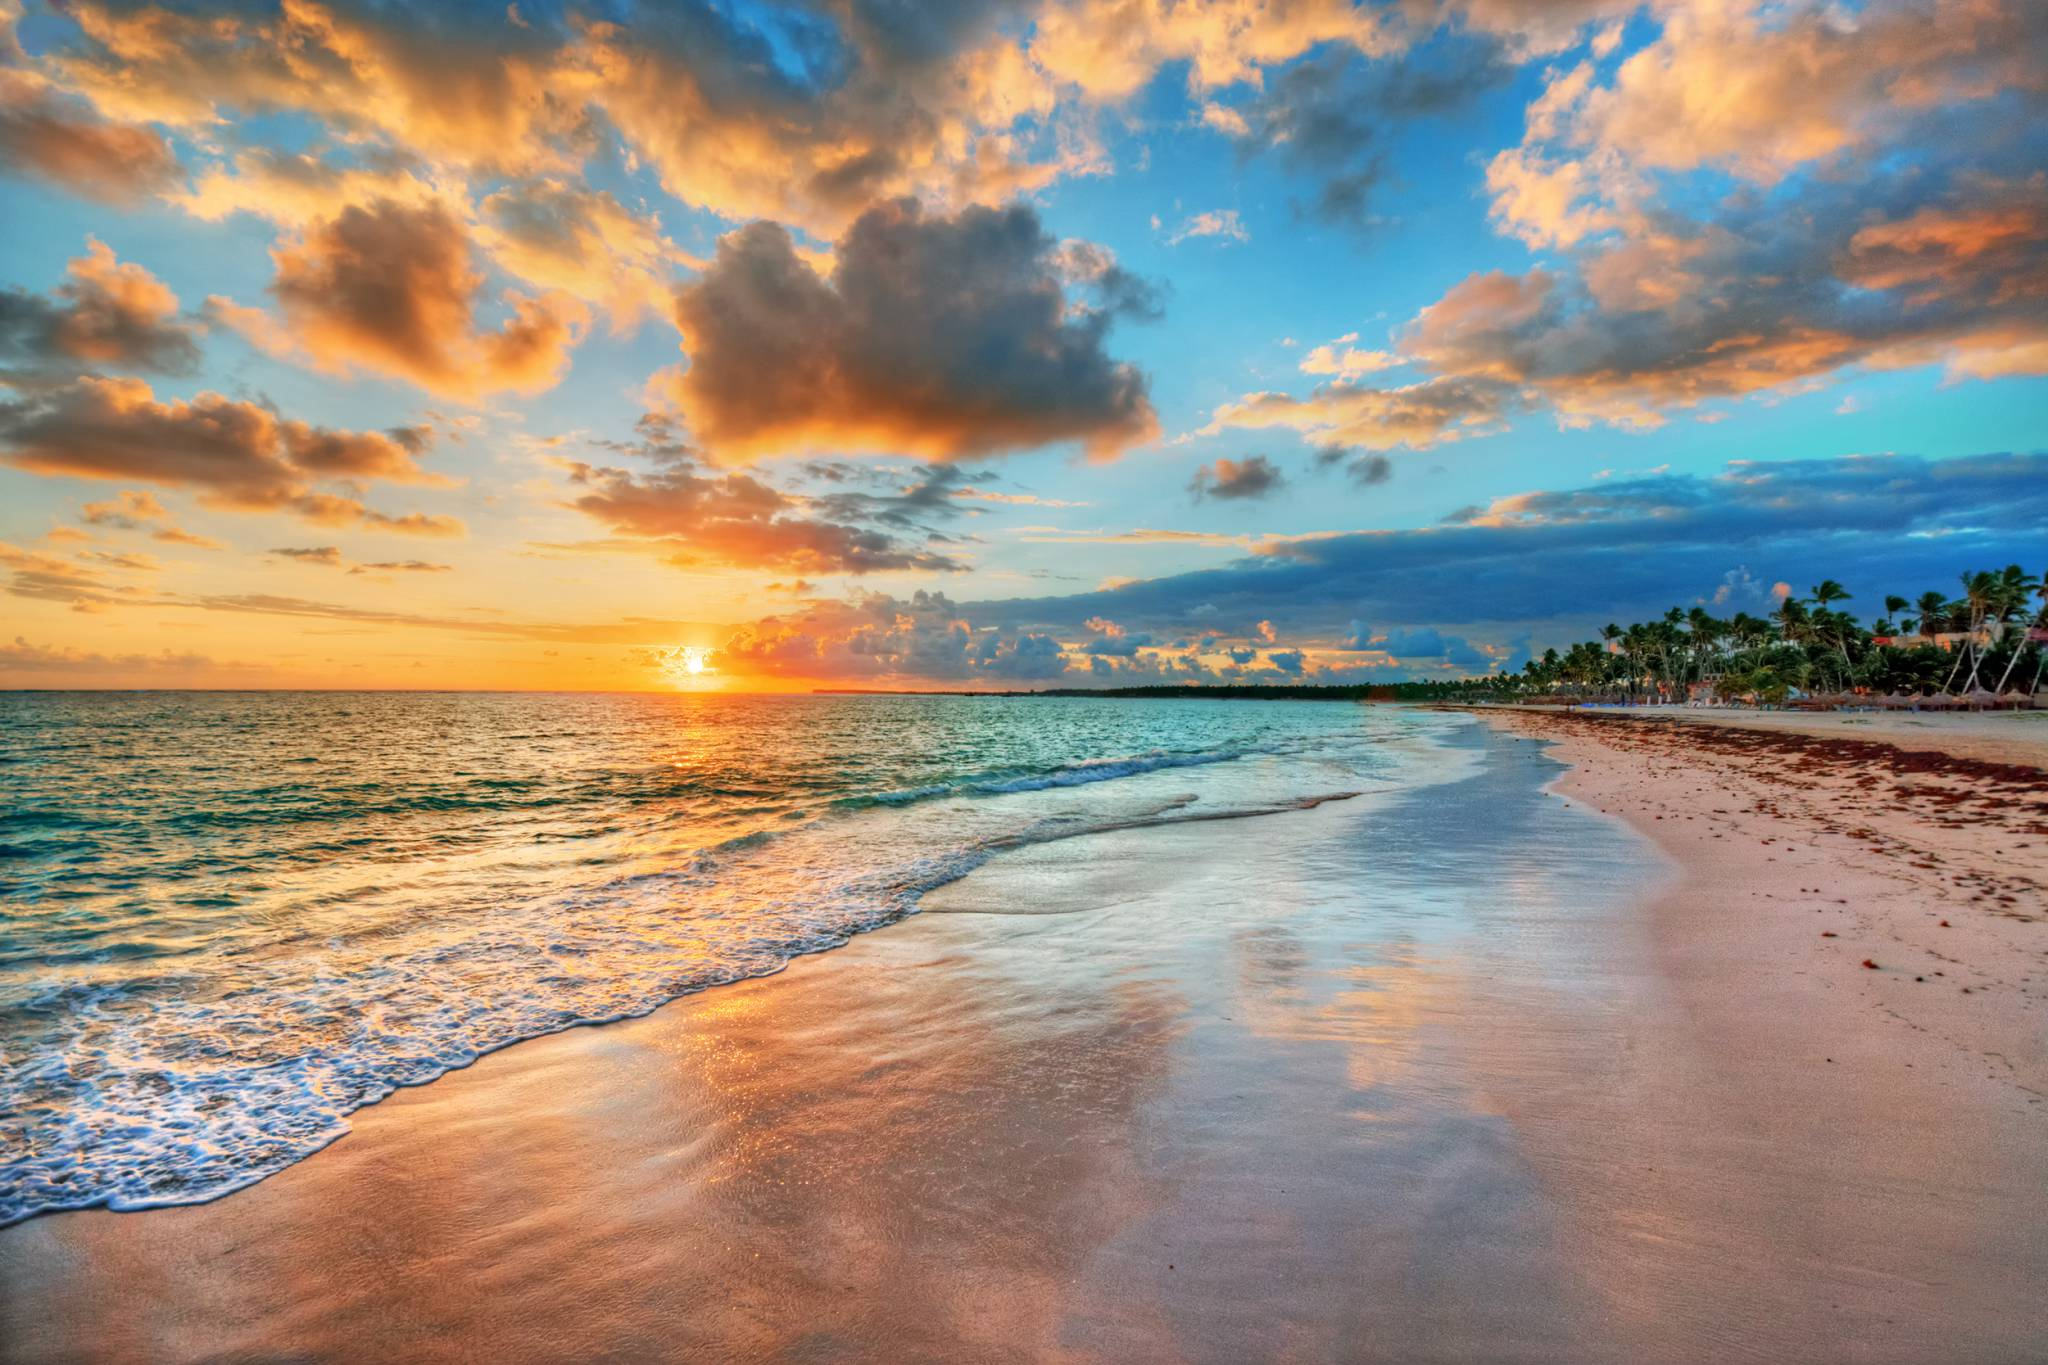 Travel to Puerto Rico with eTips Travel Guide